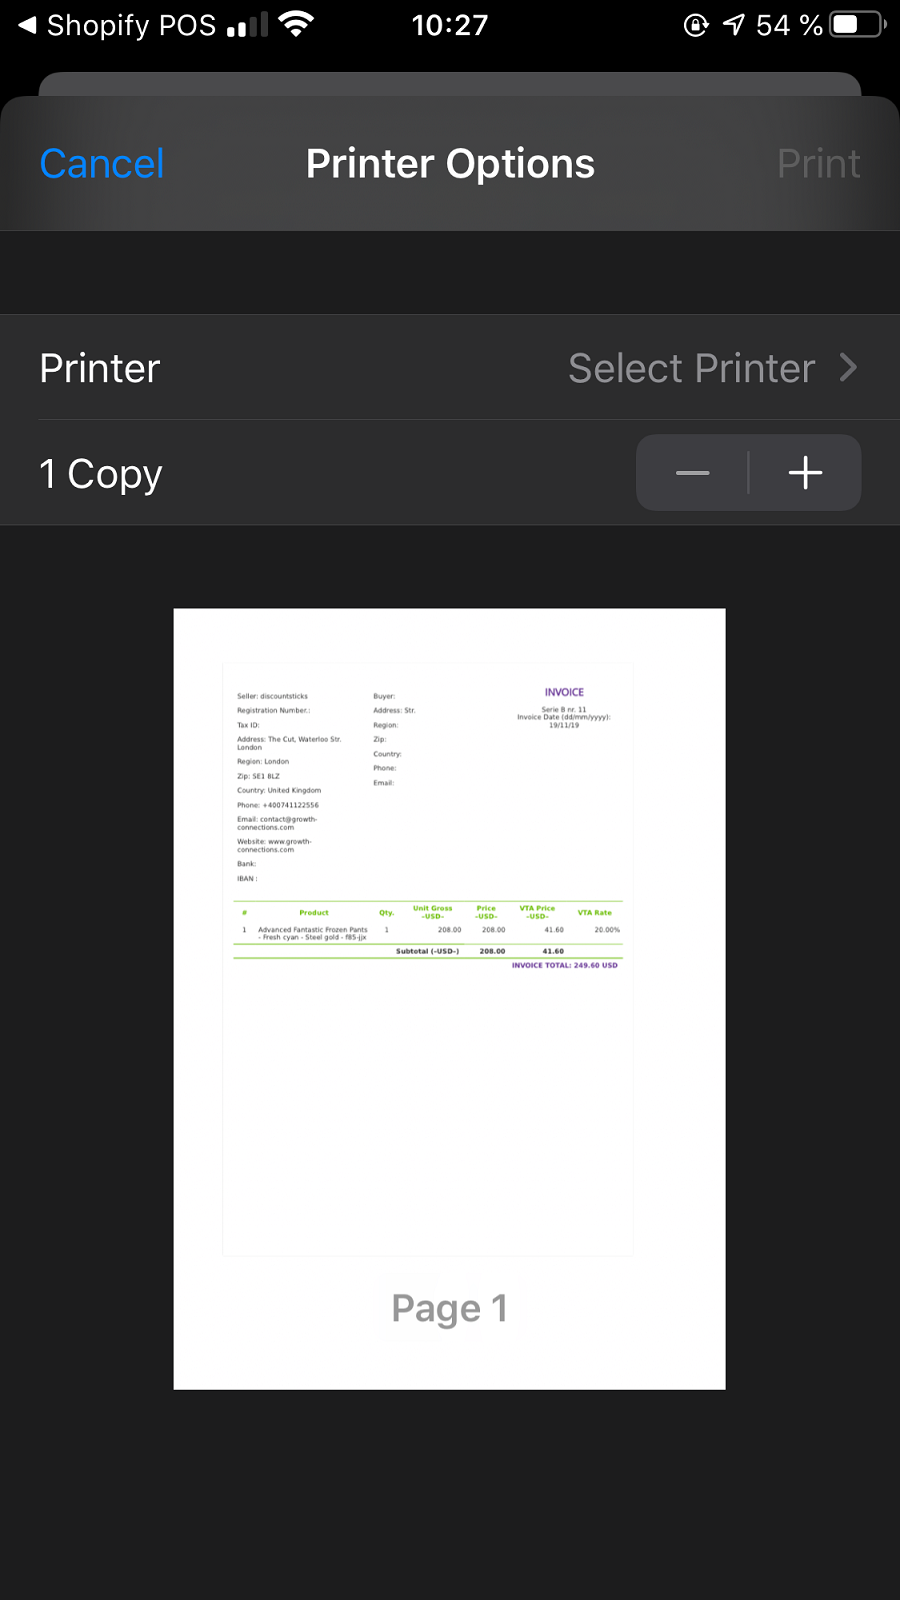 Fast invoice printing with one tap from POS iOS application.